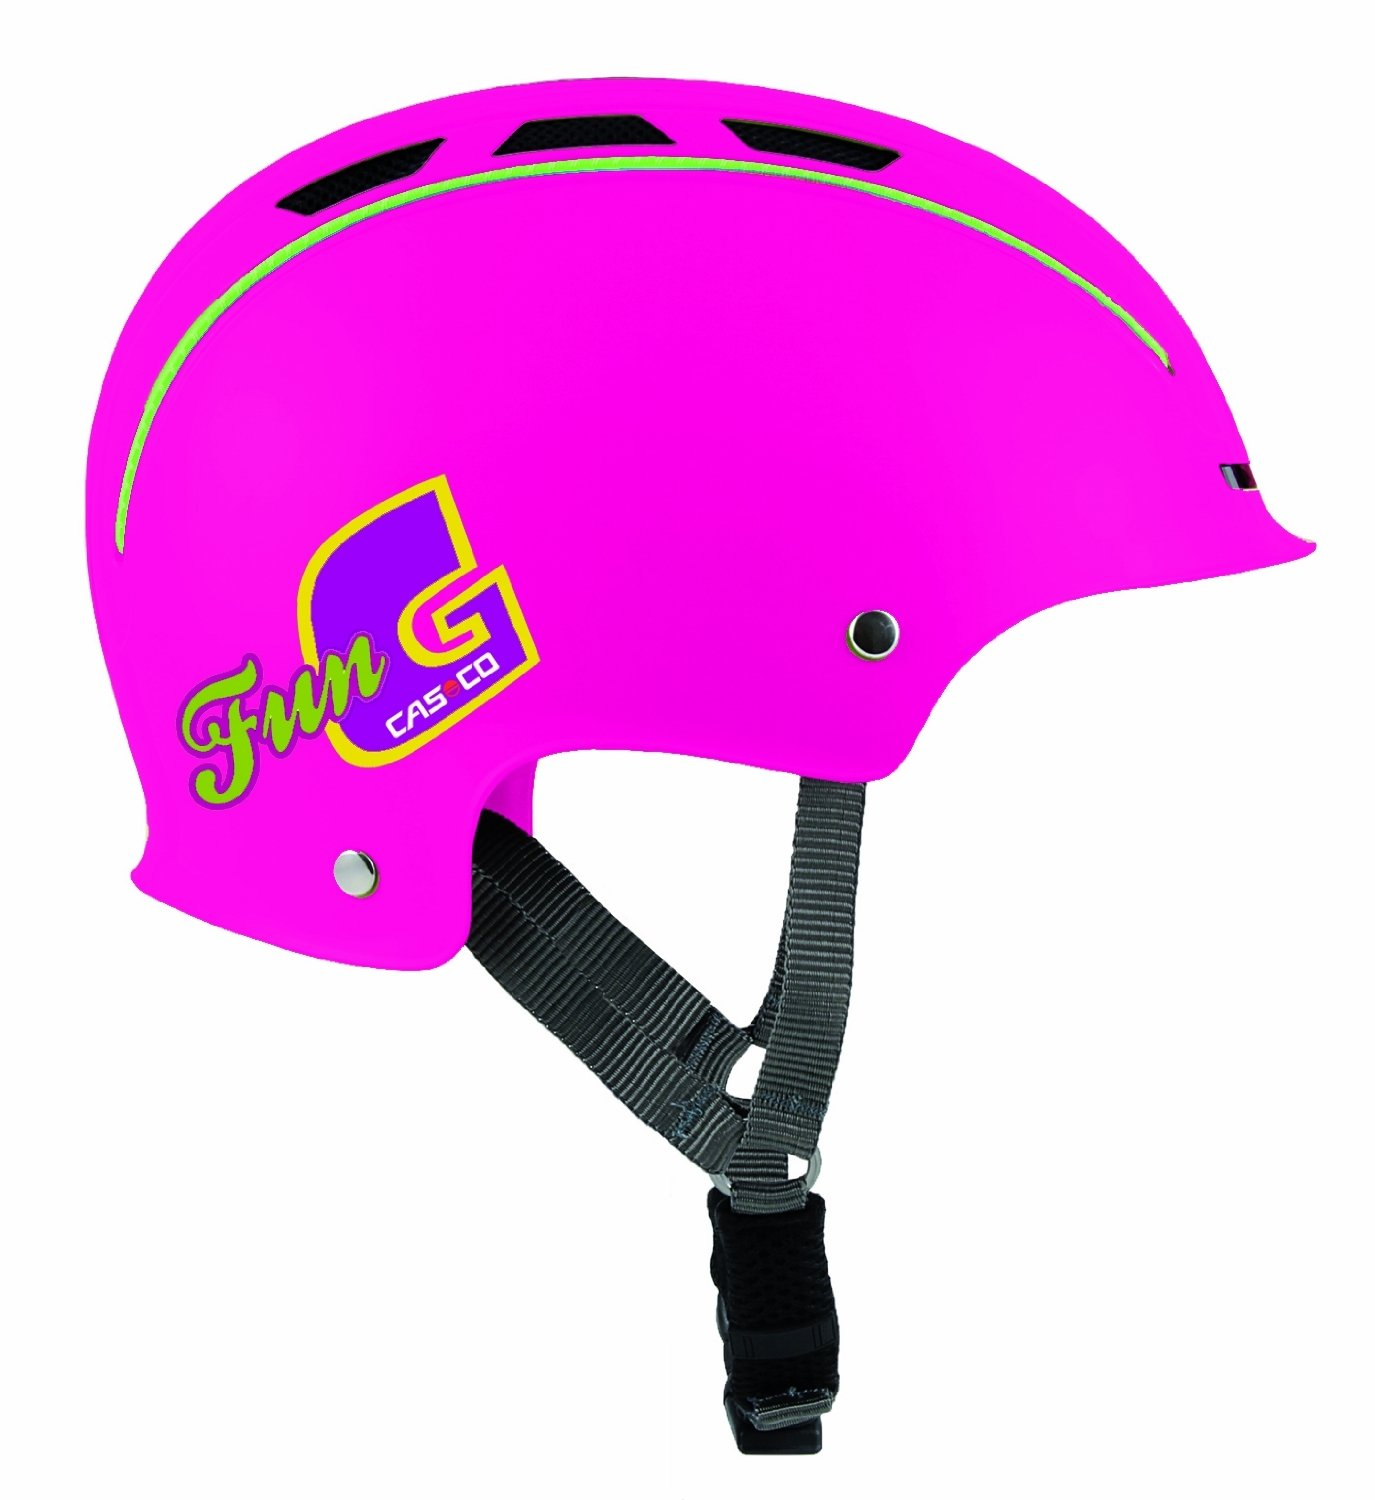 CASCO Kinder Fahrradhelm Fun Generation berry Uni Gr M 50 56cm 0651 uni Amazon Sport & Freizeit